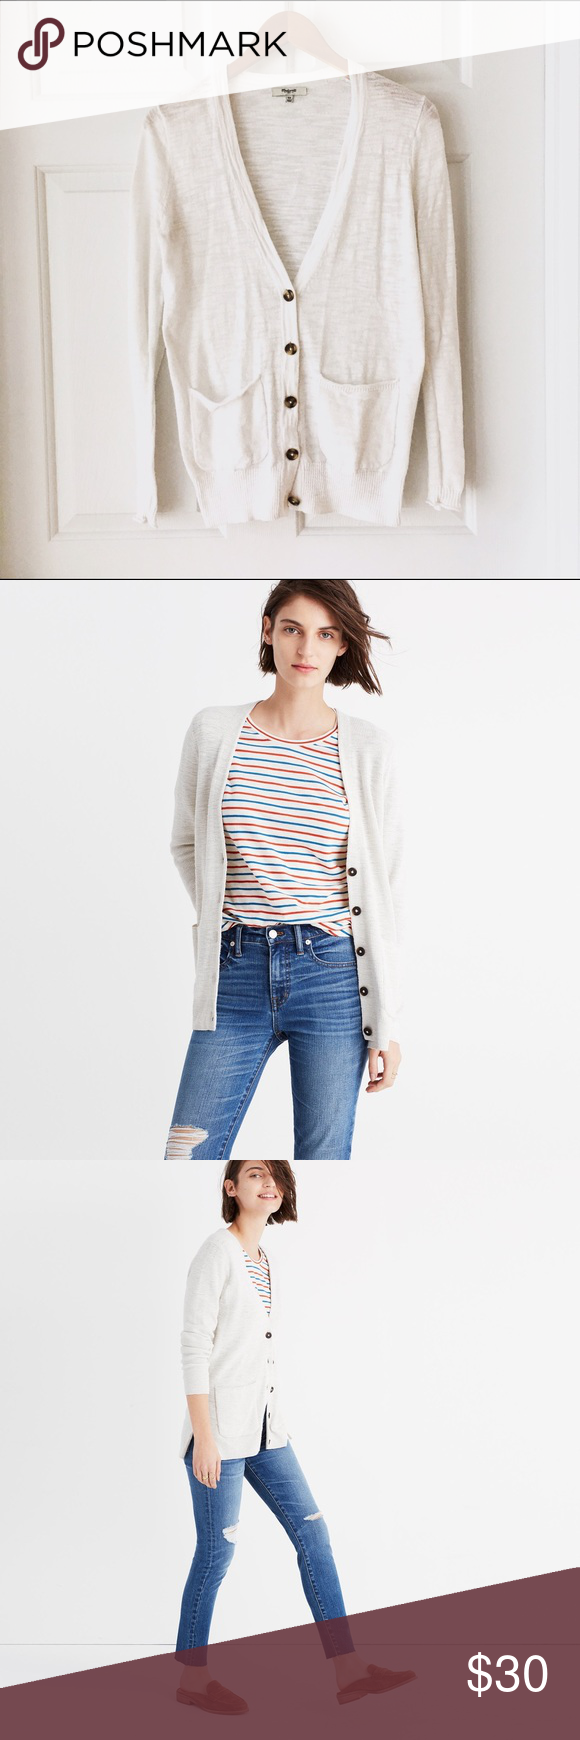 Madewell Spring-weight Cardigan | Sweater cardigan, Warm and Madewell